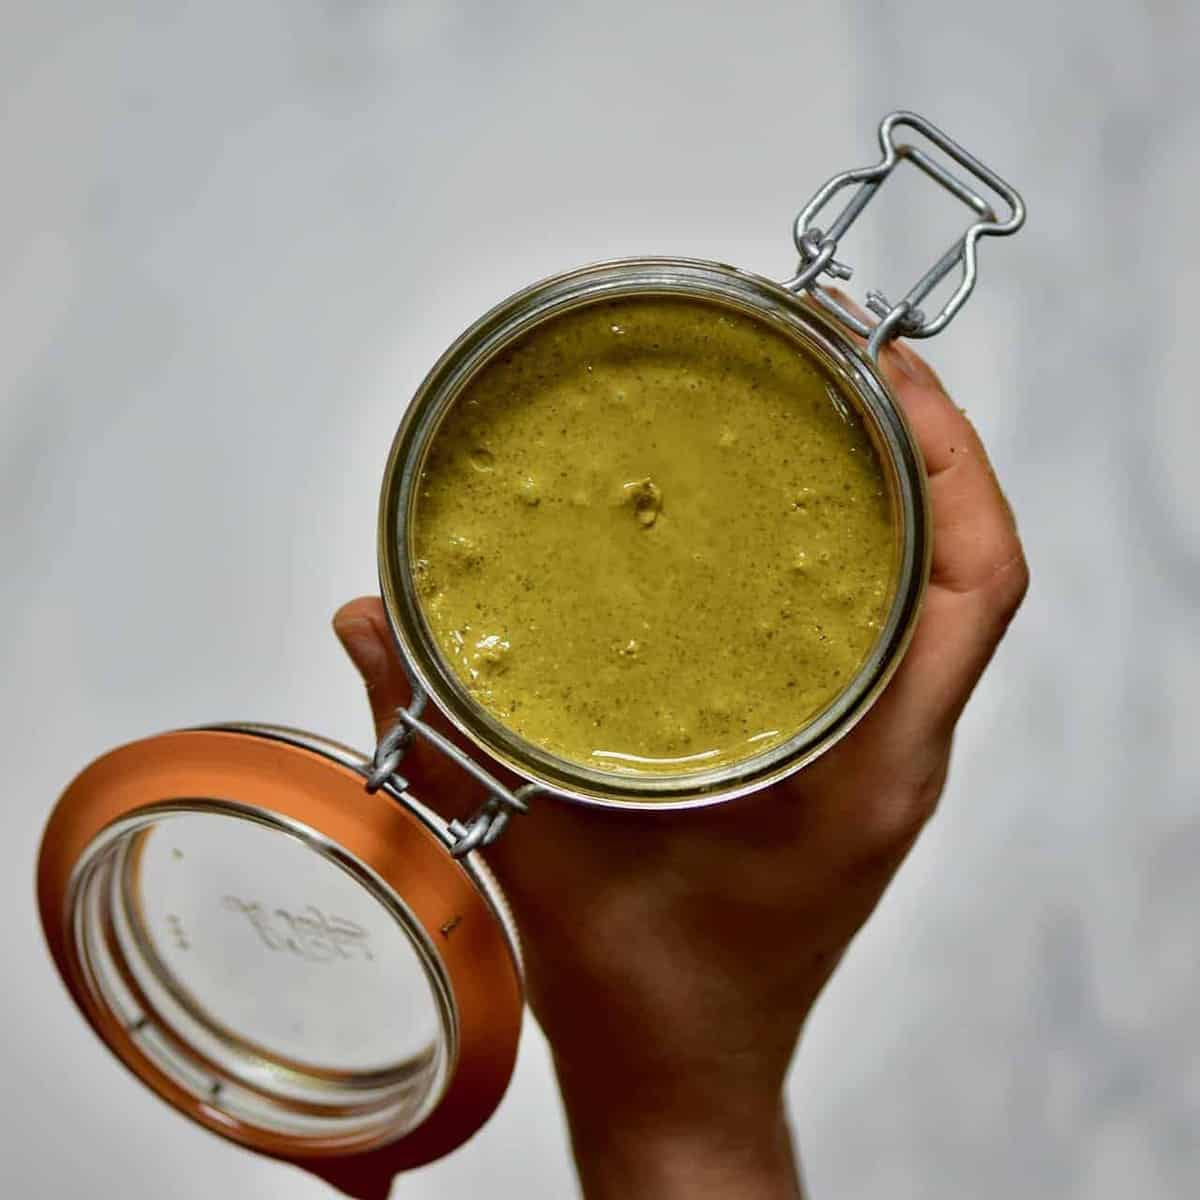 a jar of homemade pistachio butter recipe